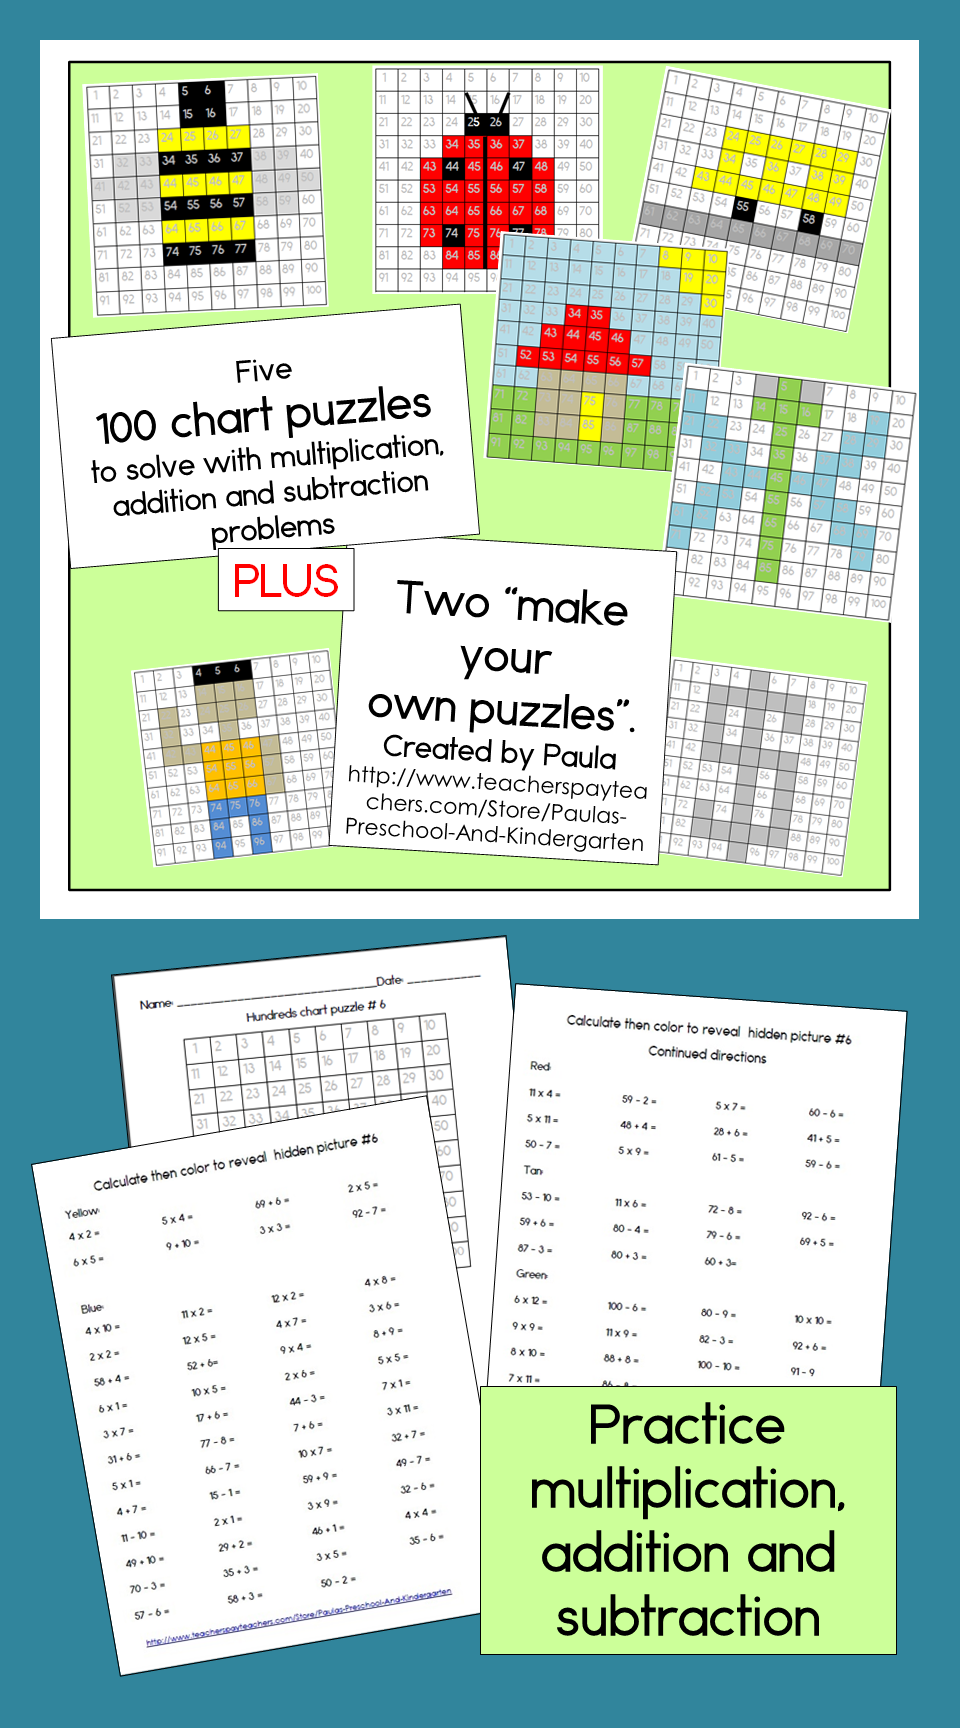 Hundreds chart mystery pictures with addition subtraction hundreds chart mystery pictures with addition subtraction multiplication nvjuhfo Gallery